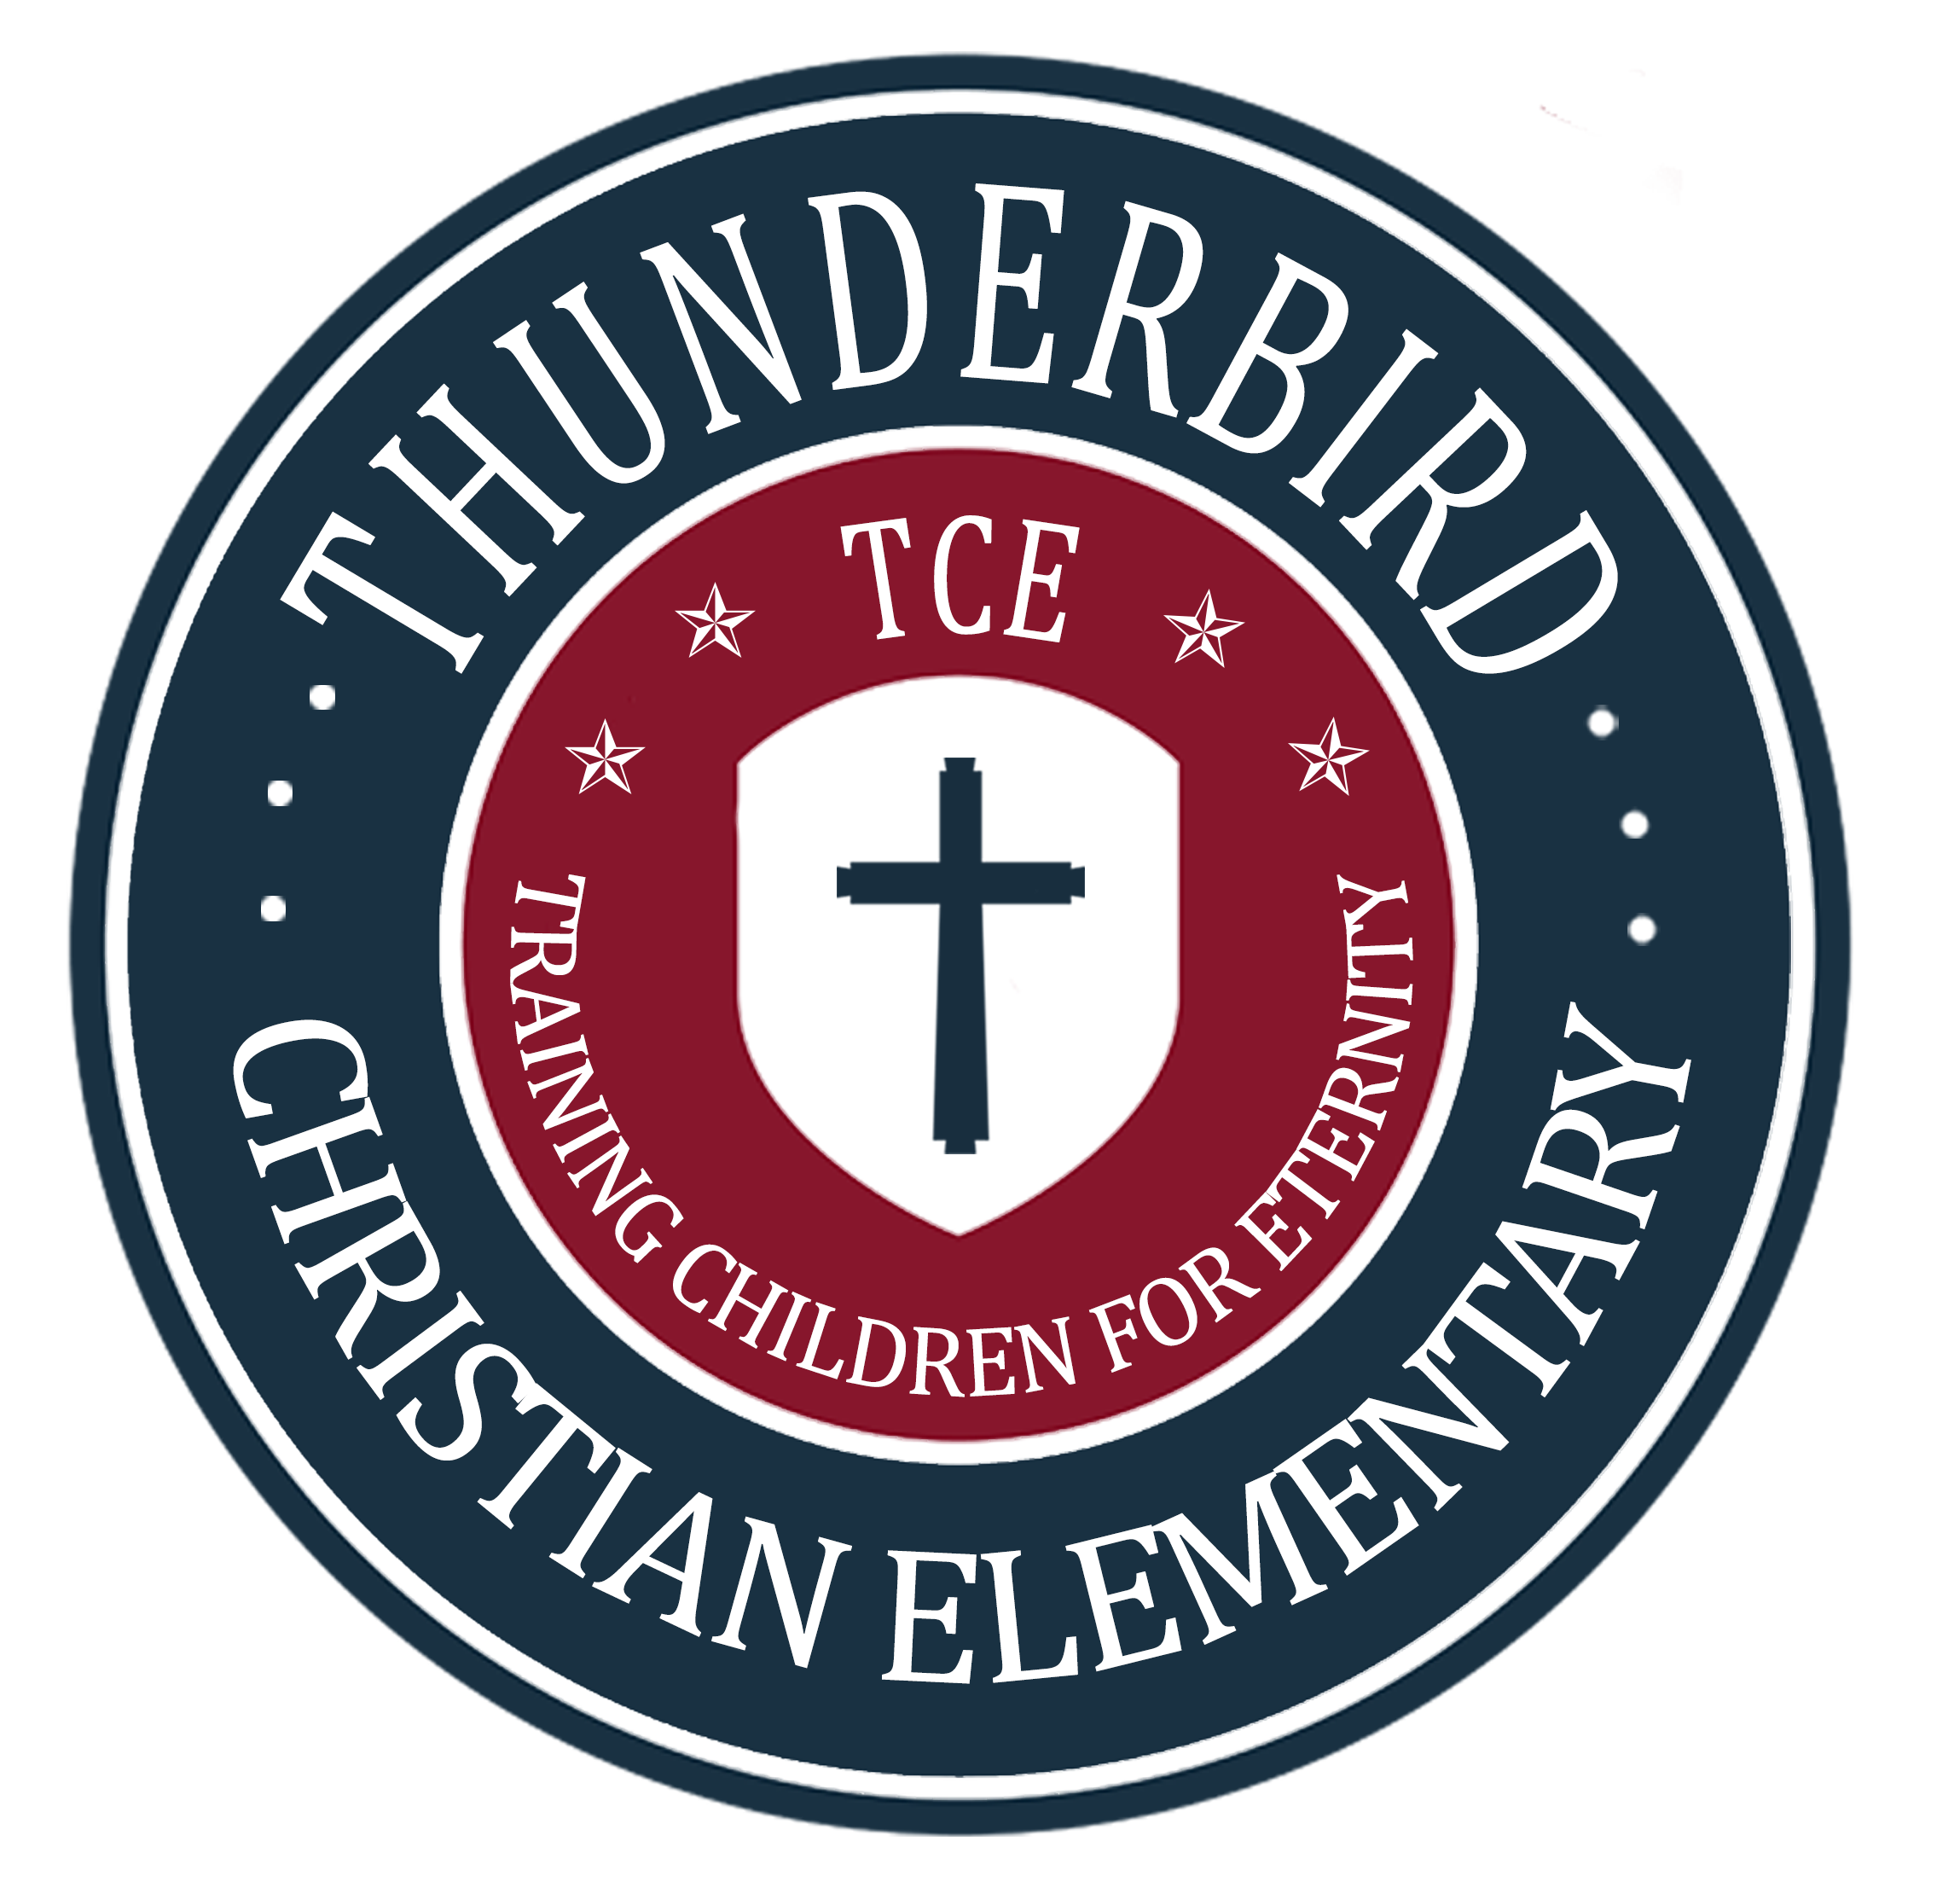 tceround-logo.png